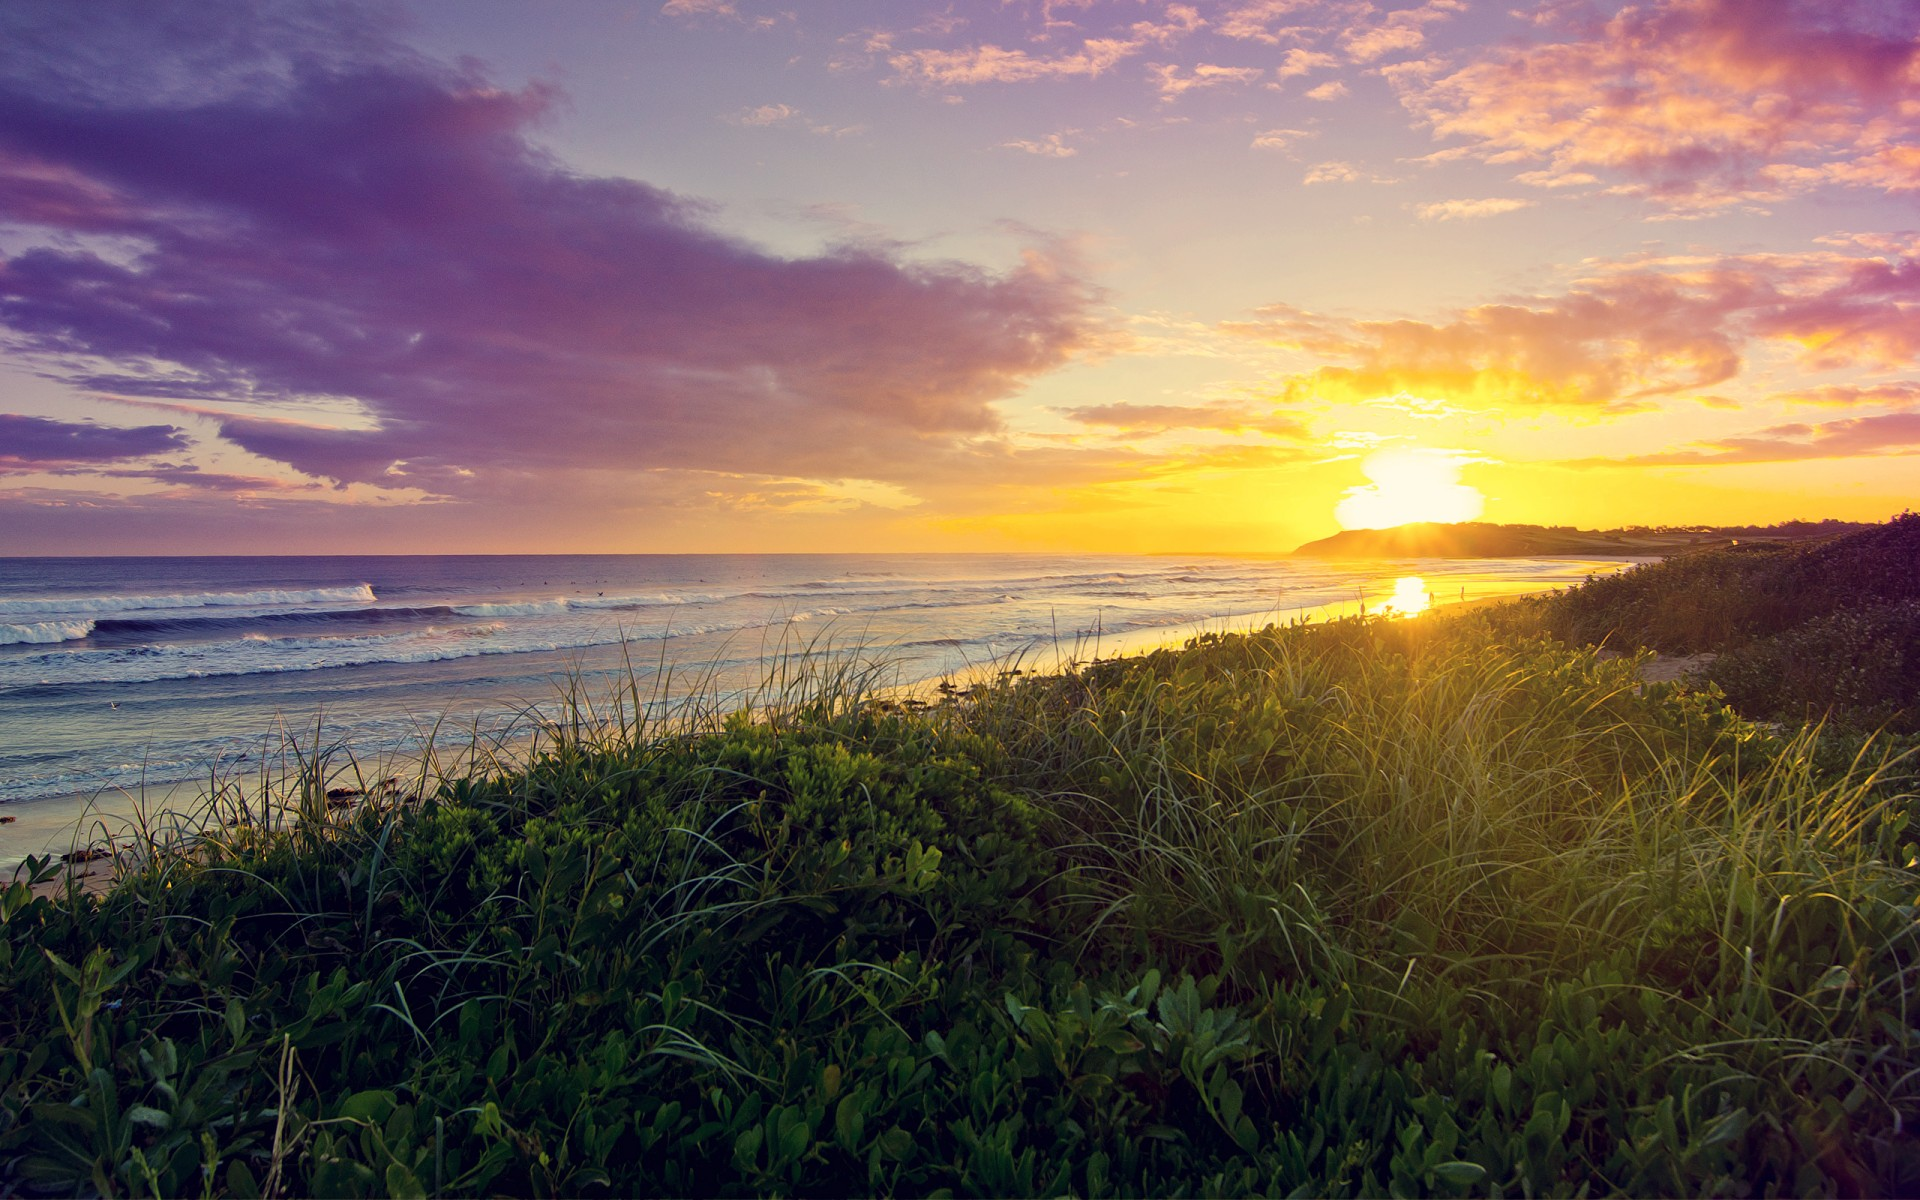 Anime Fall 2015 Wallpaper Dee Why Beach Sunrise Wallpapers Hd Wallpapers Id 14624